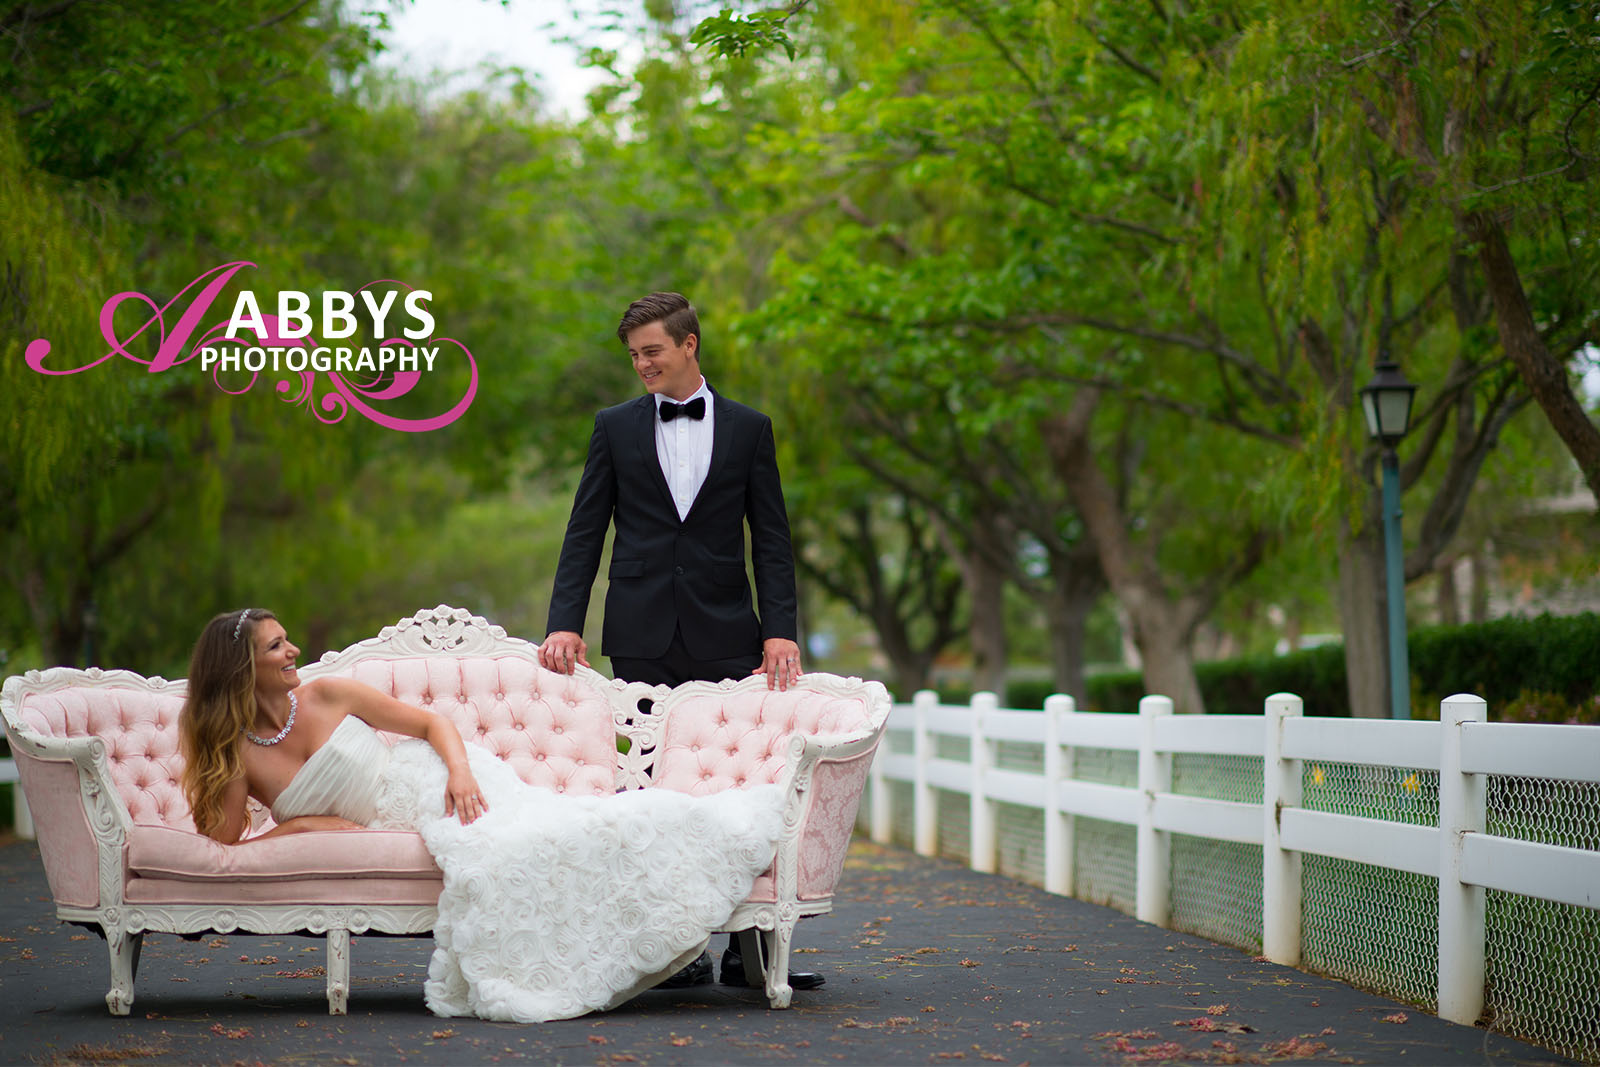 A wedding is a formal occasion, and you need formal wedding photography.